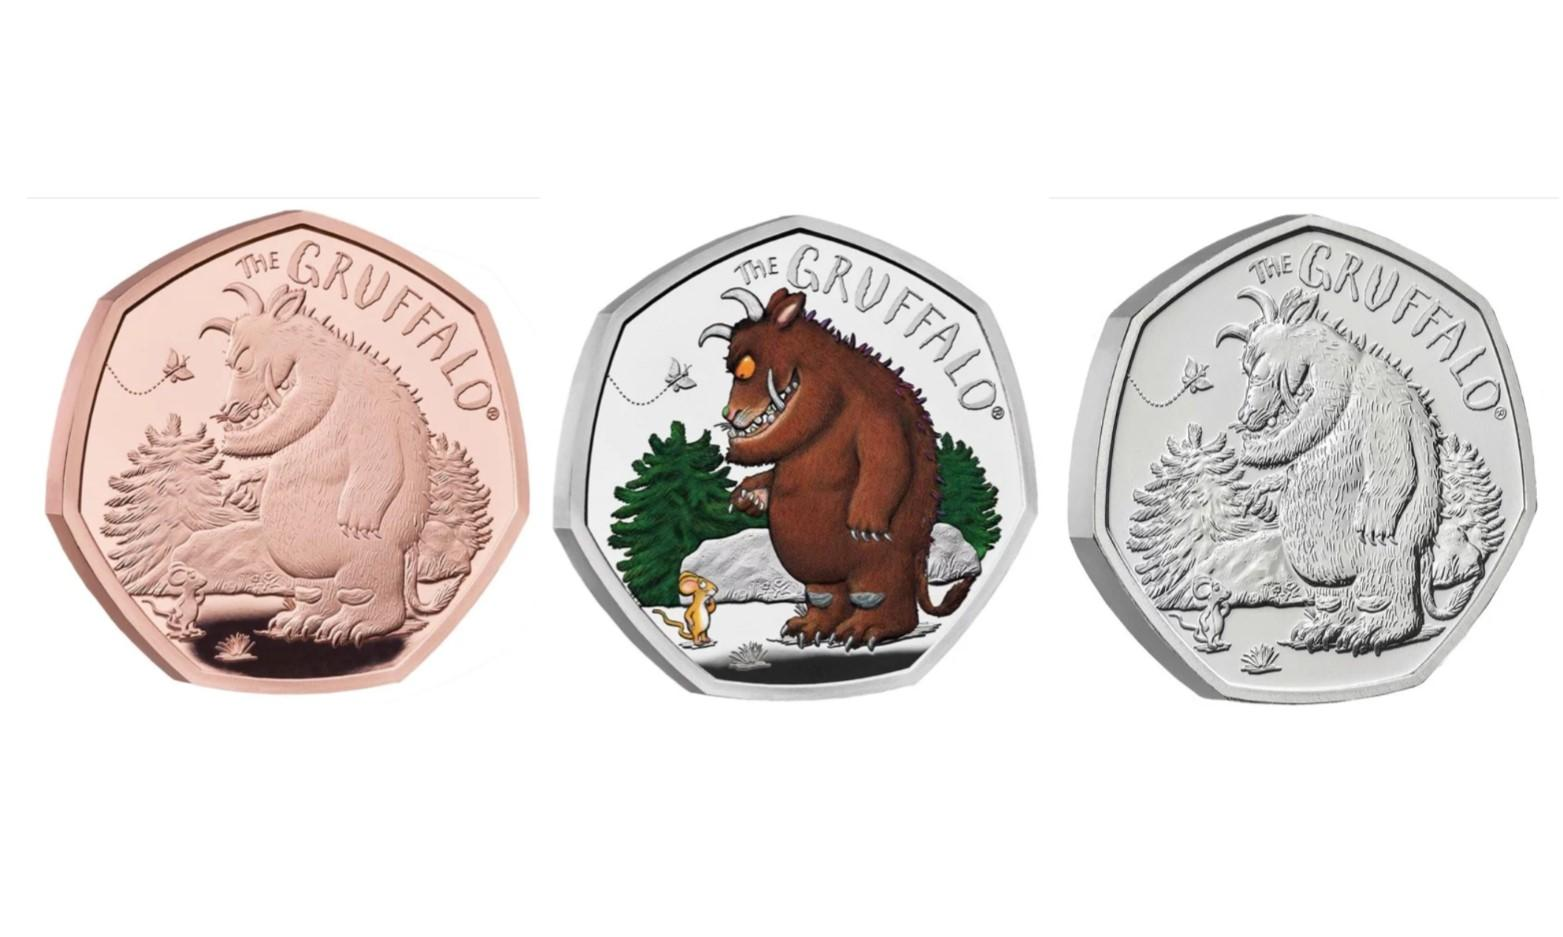 New Gruffalo and Mouse Coin Released by Royal Mint